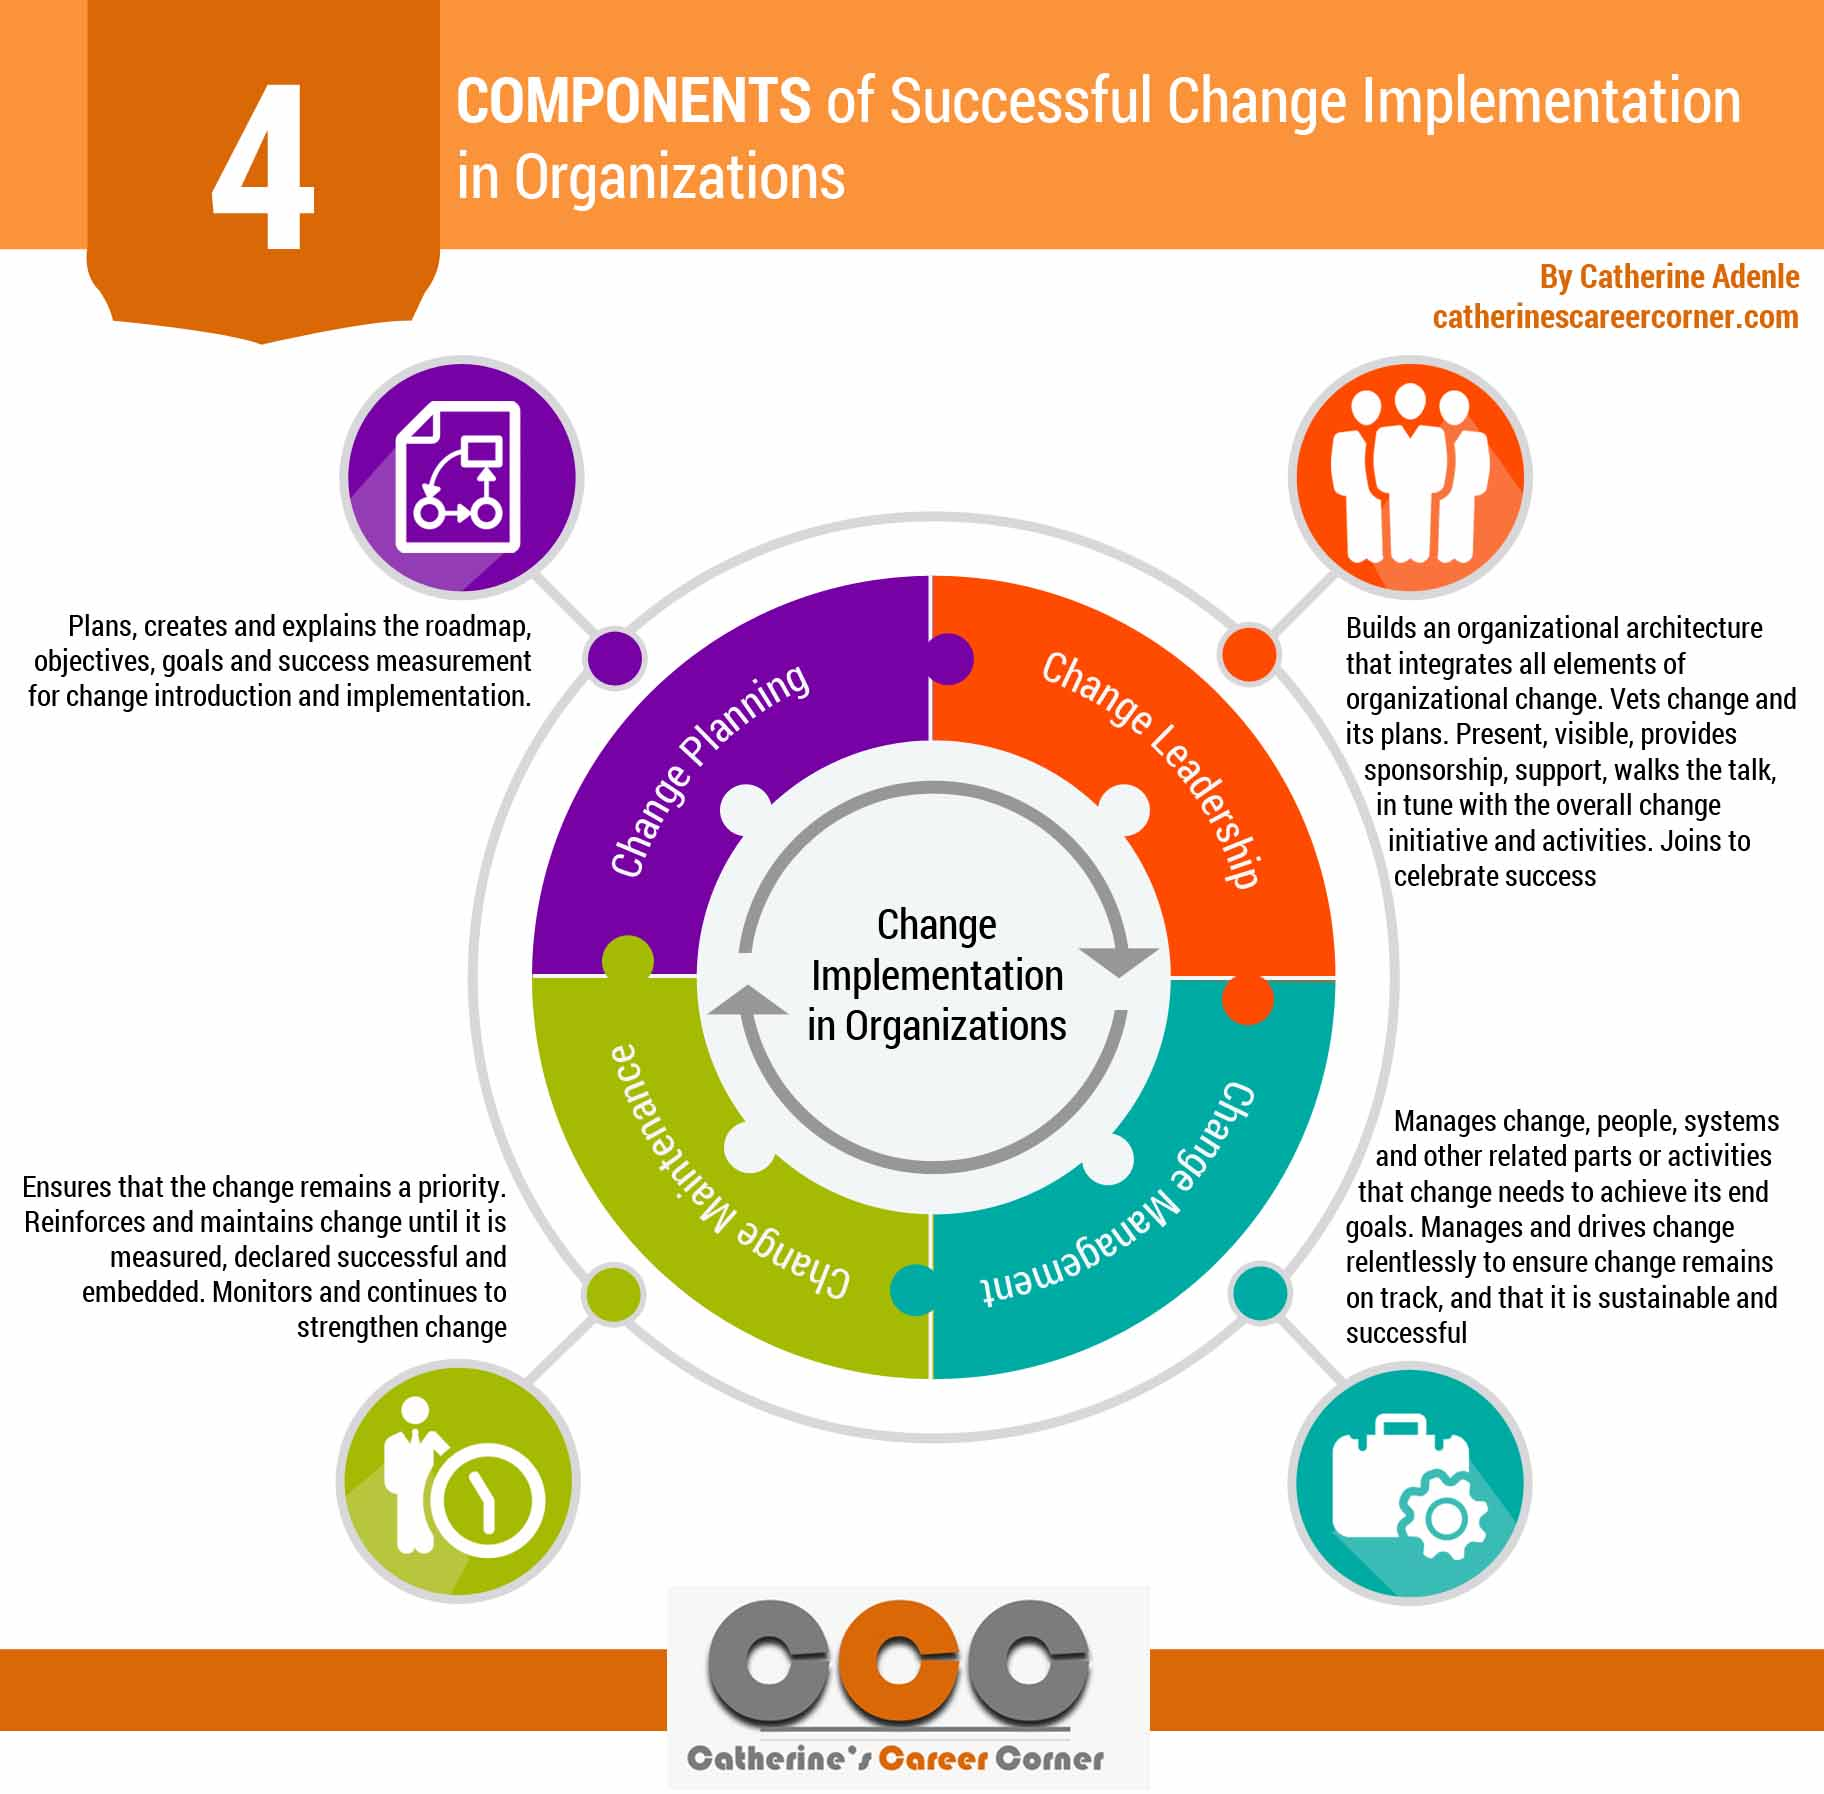 Successful Change Implementation in Organizations (Infographic)